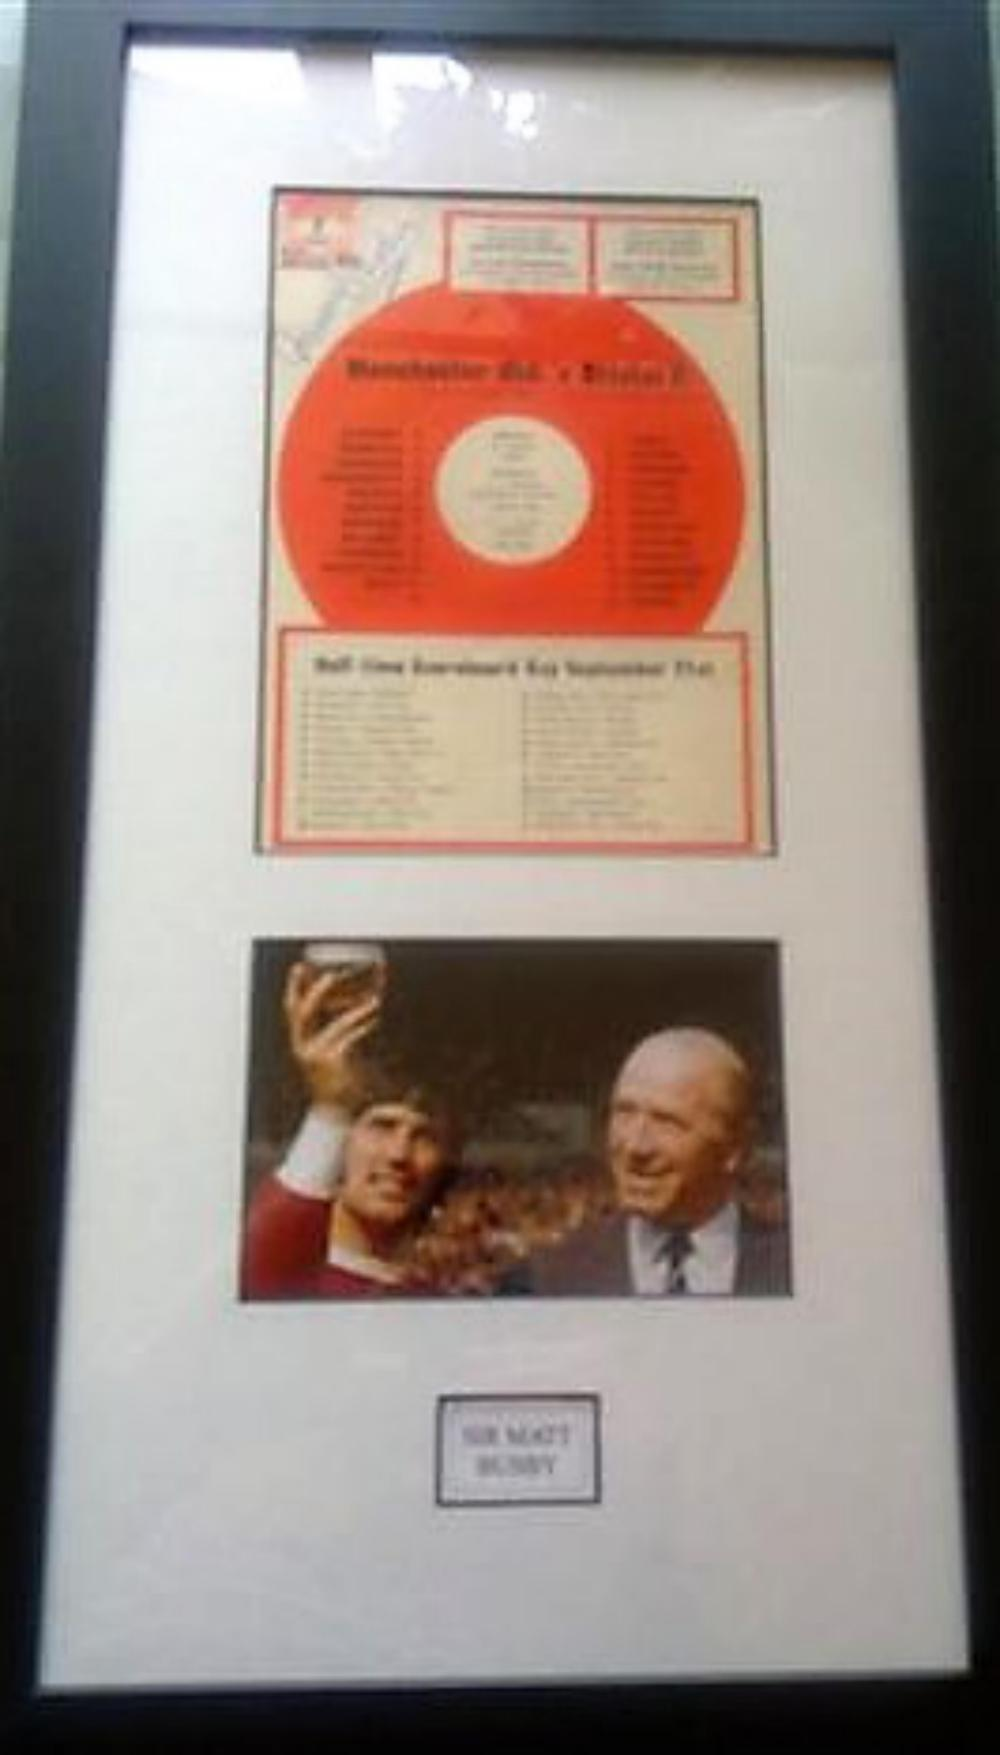 Lot 33 - Sir Matt Busby Framed and  Signed Programme - Key facts he built the famous Busby Babes team. In a total of 25 years with the club, he won 13 trophies. During his time at City, Busby played in two FA Cup Finals, winning one of them. After his